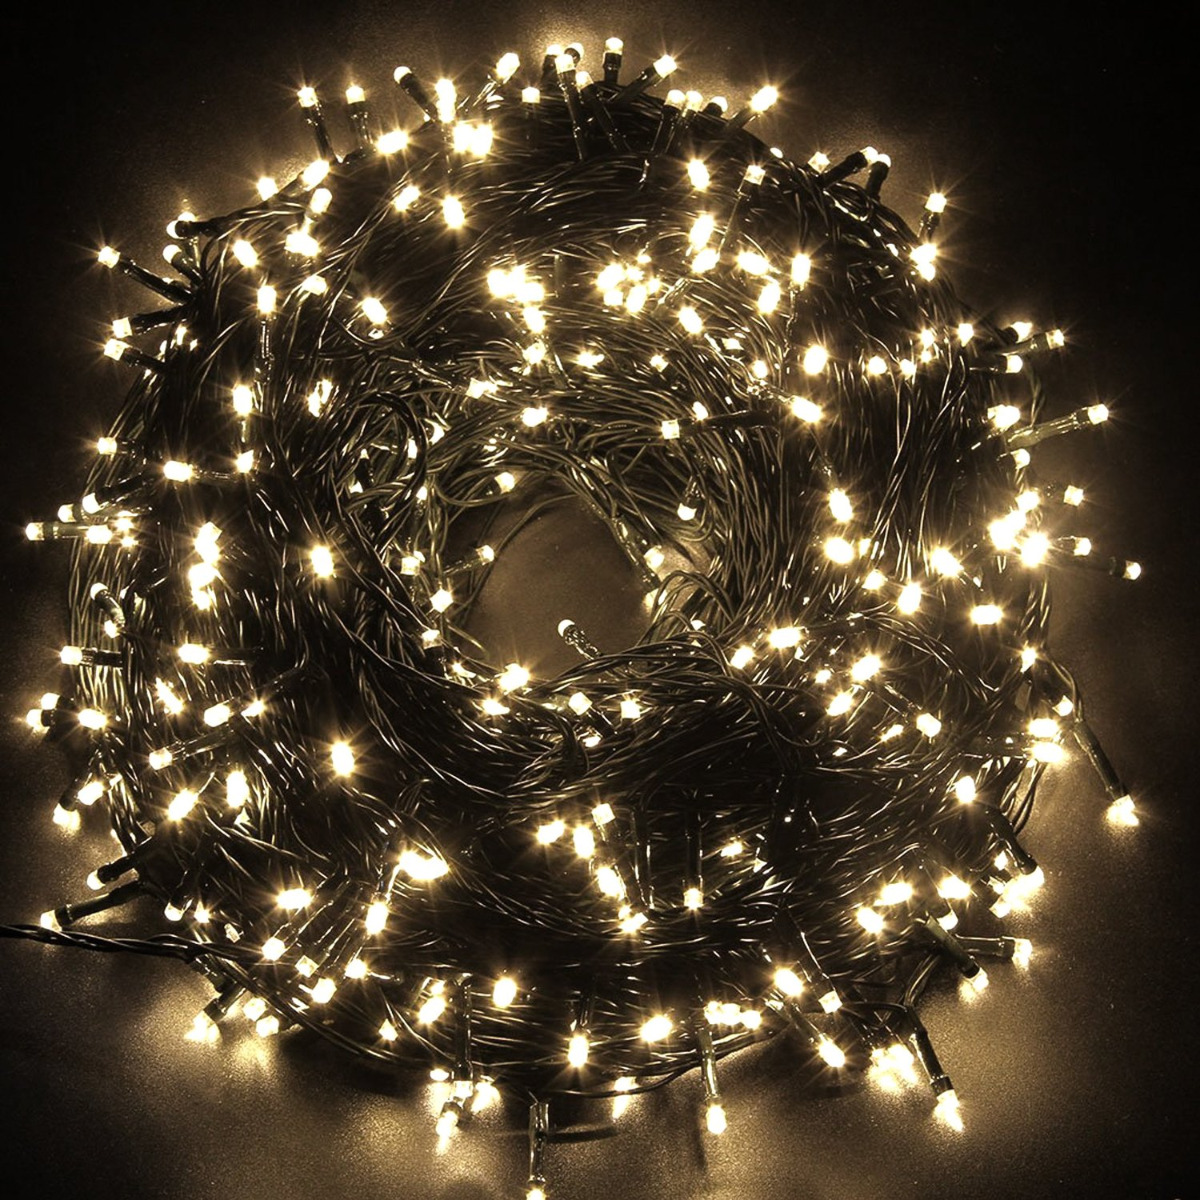 Http Www Ebay Co Uk Itm Safe Low Voltage Warm White Christmas Fairy Lights 30m 10m 300 Led Outdoor Tree 122203474171